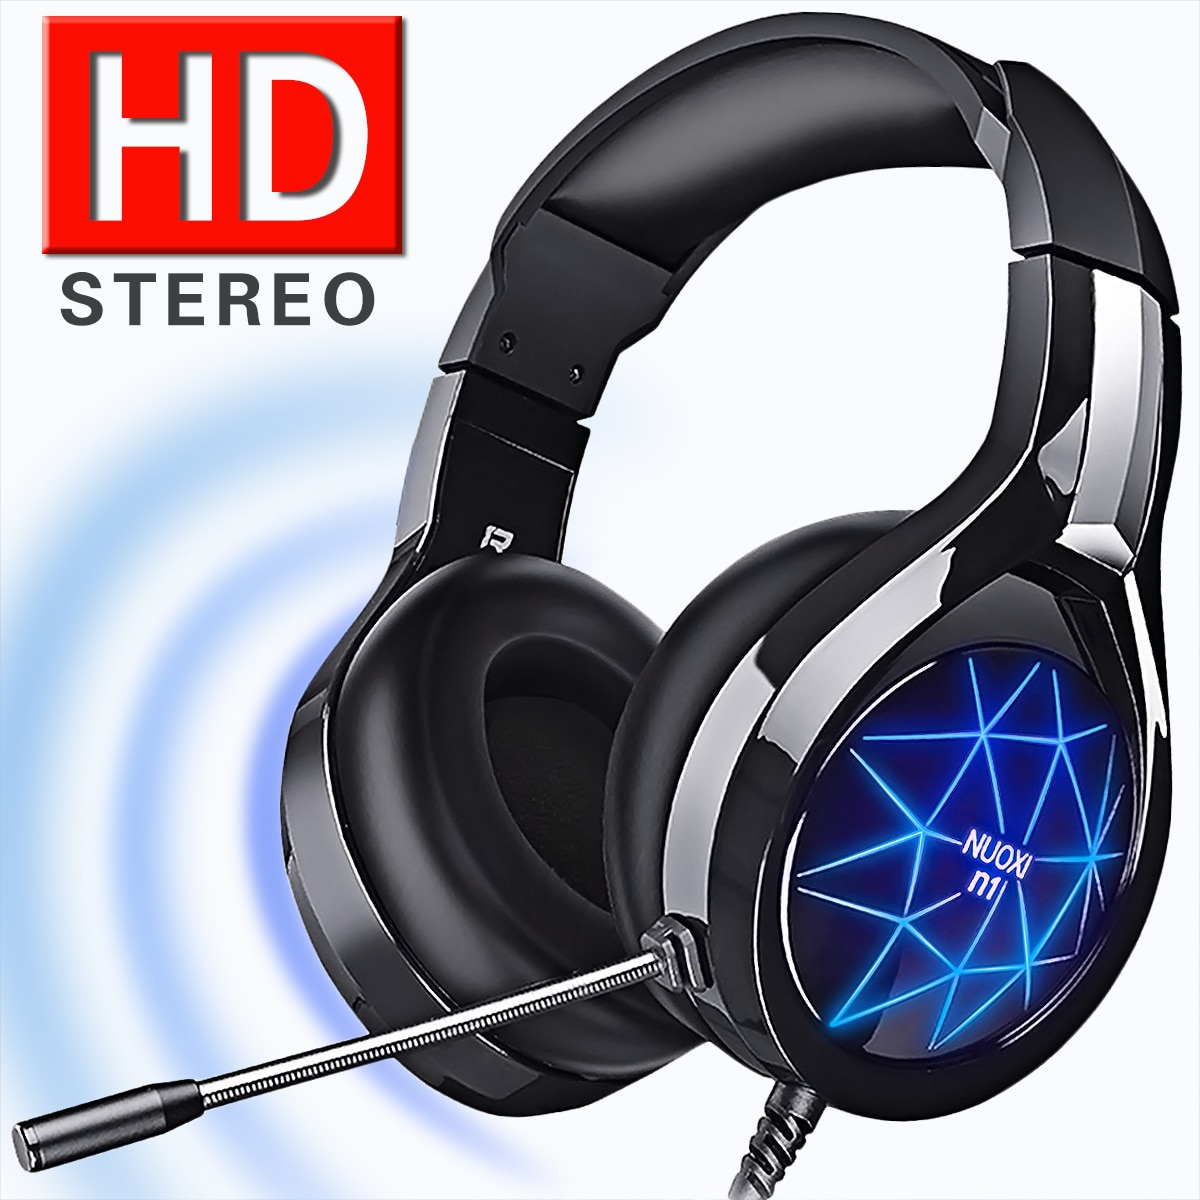 Gaming Headset Headphones Surround Sound Stereo Game Earphones Wired Helmet with HD Microphone For G